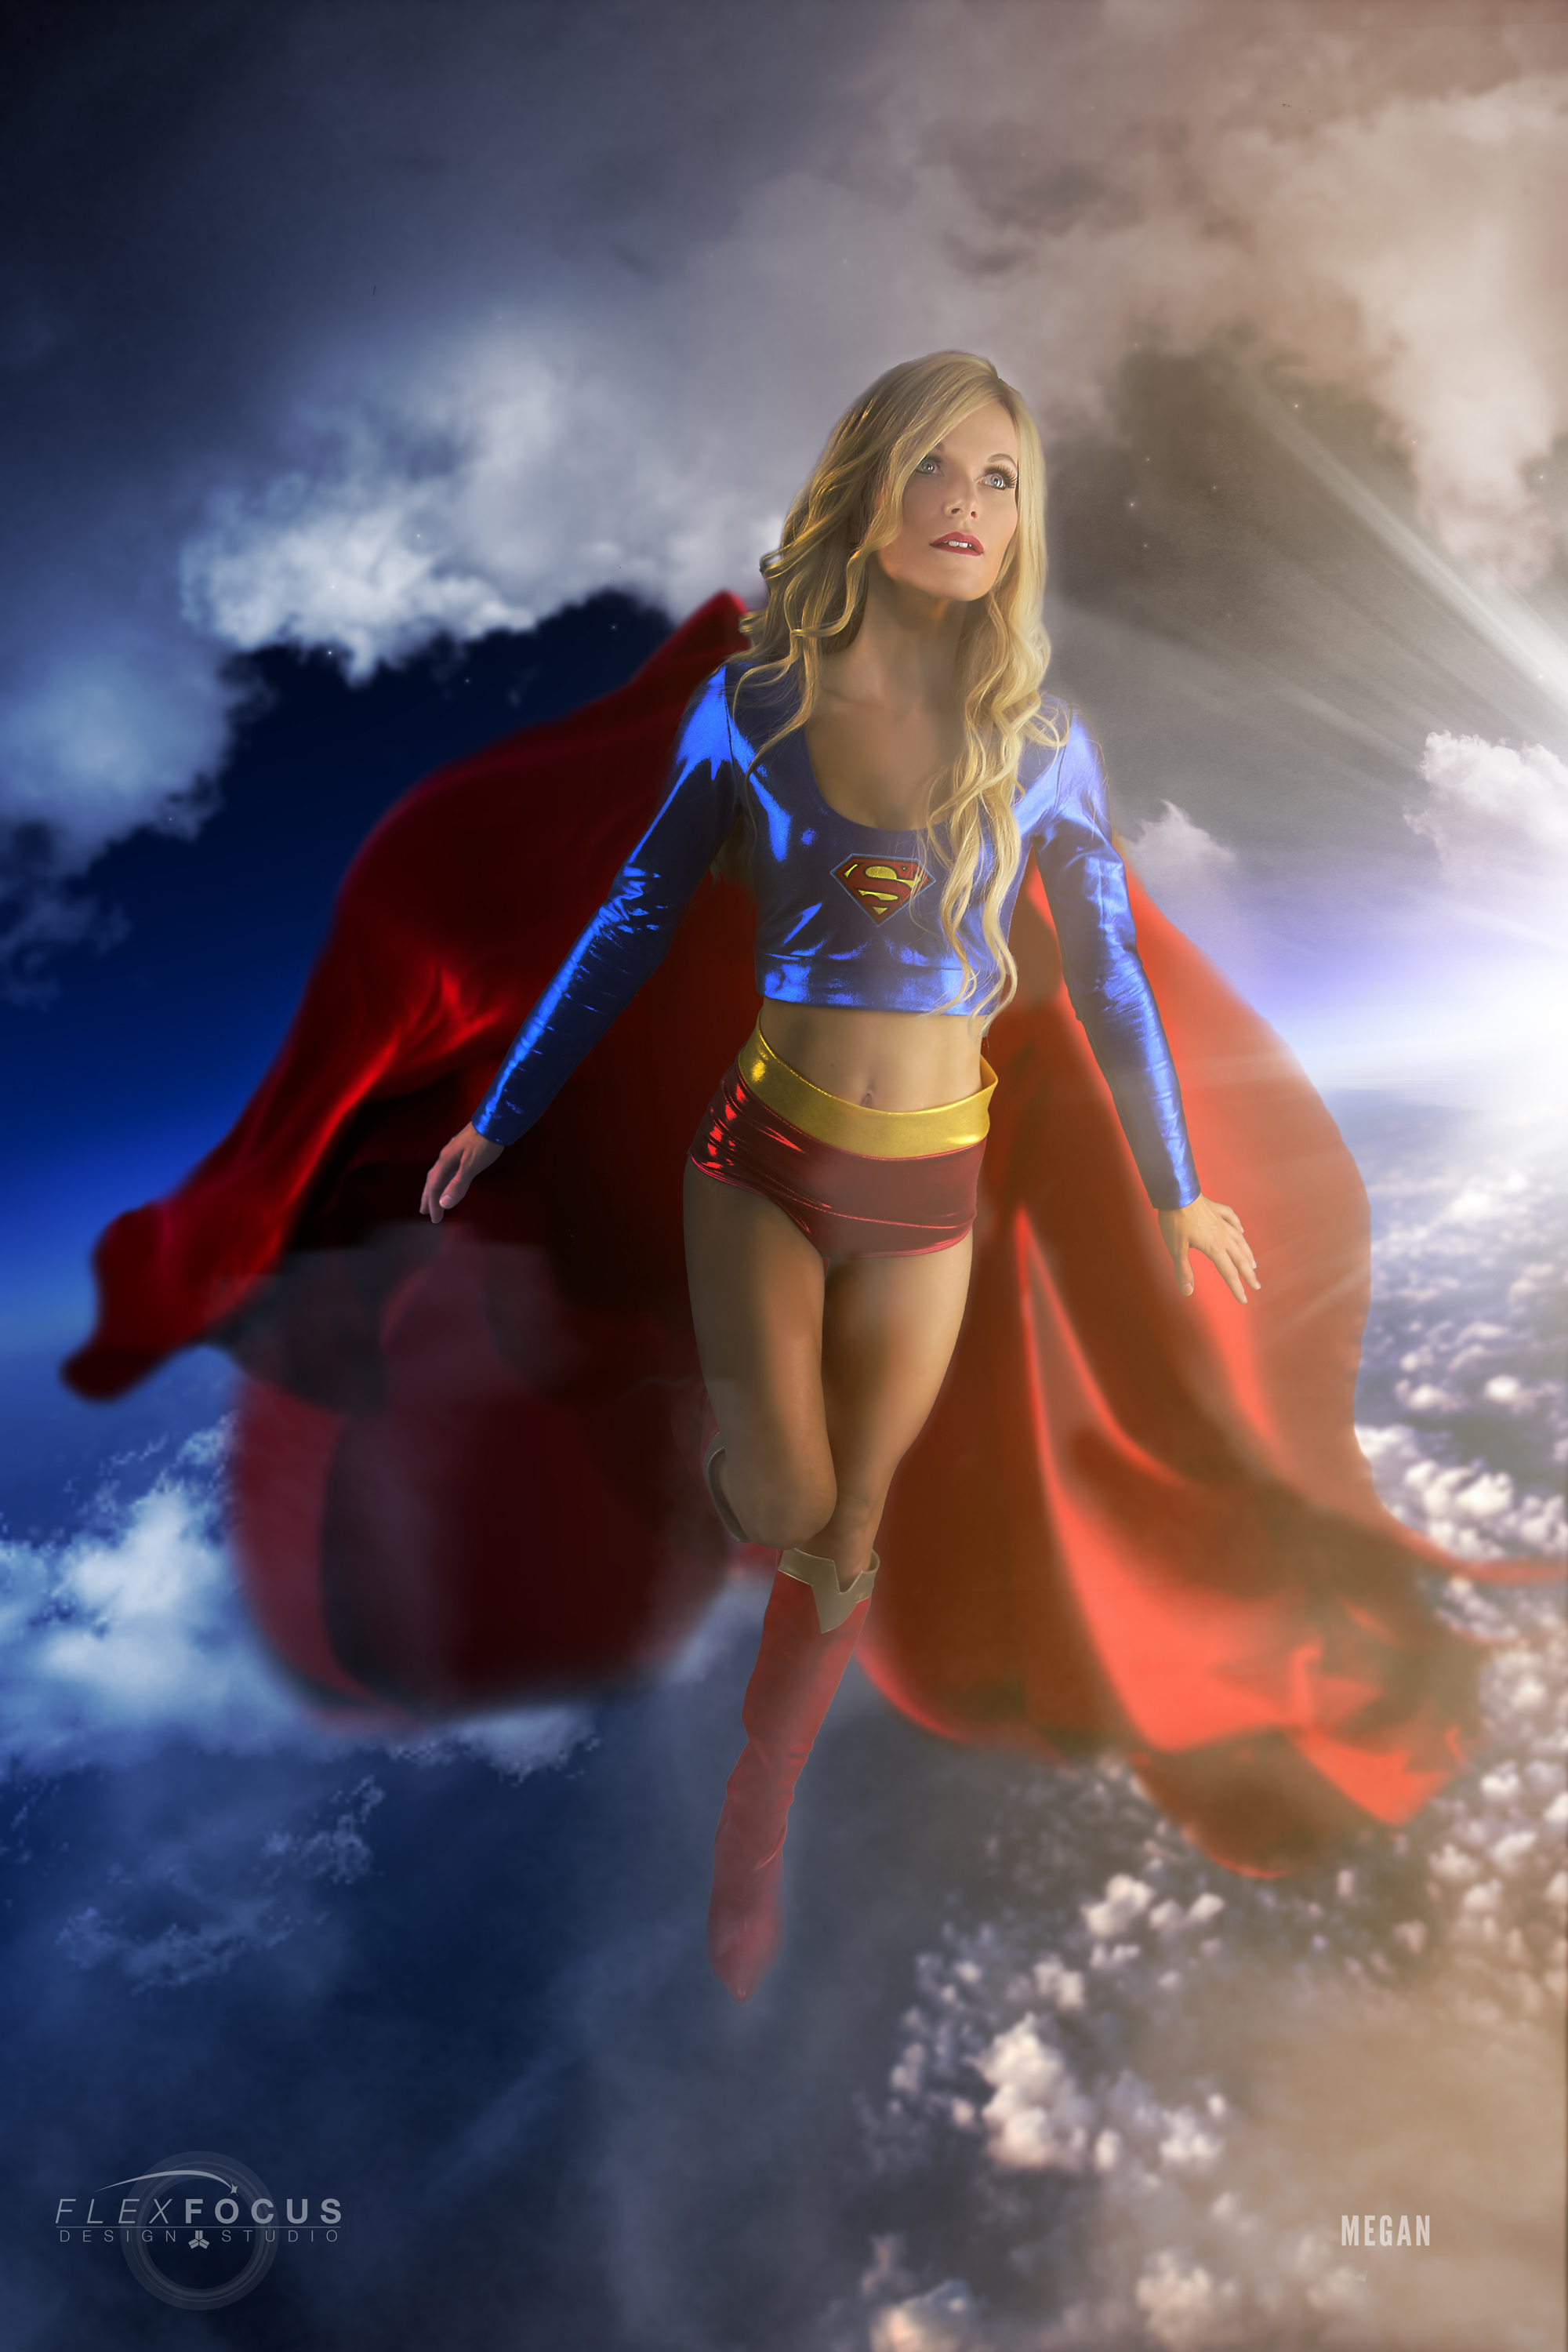 How Girl Wallpaper Supergirl In Flight 12 X 18 Poster 183 Cosplay Composites